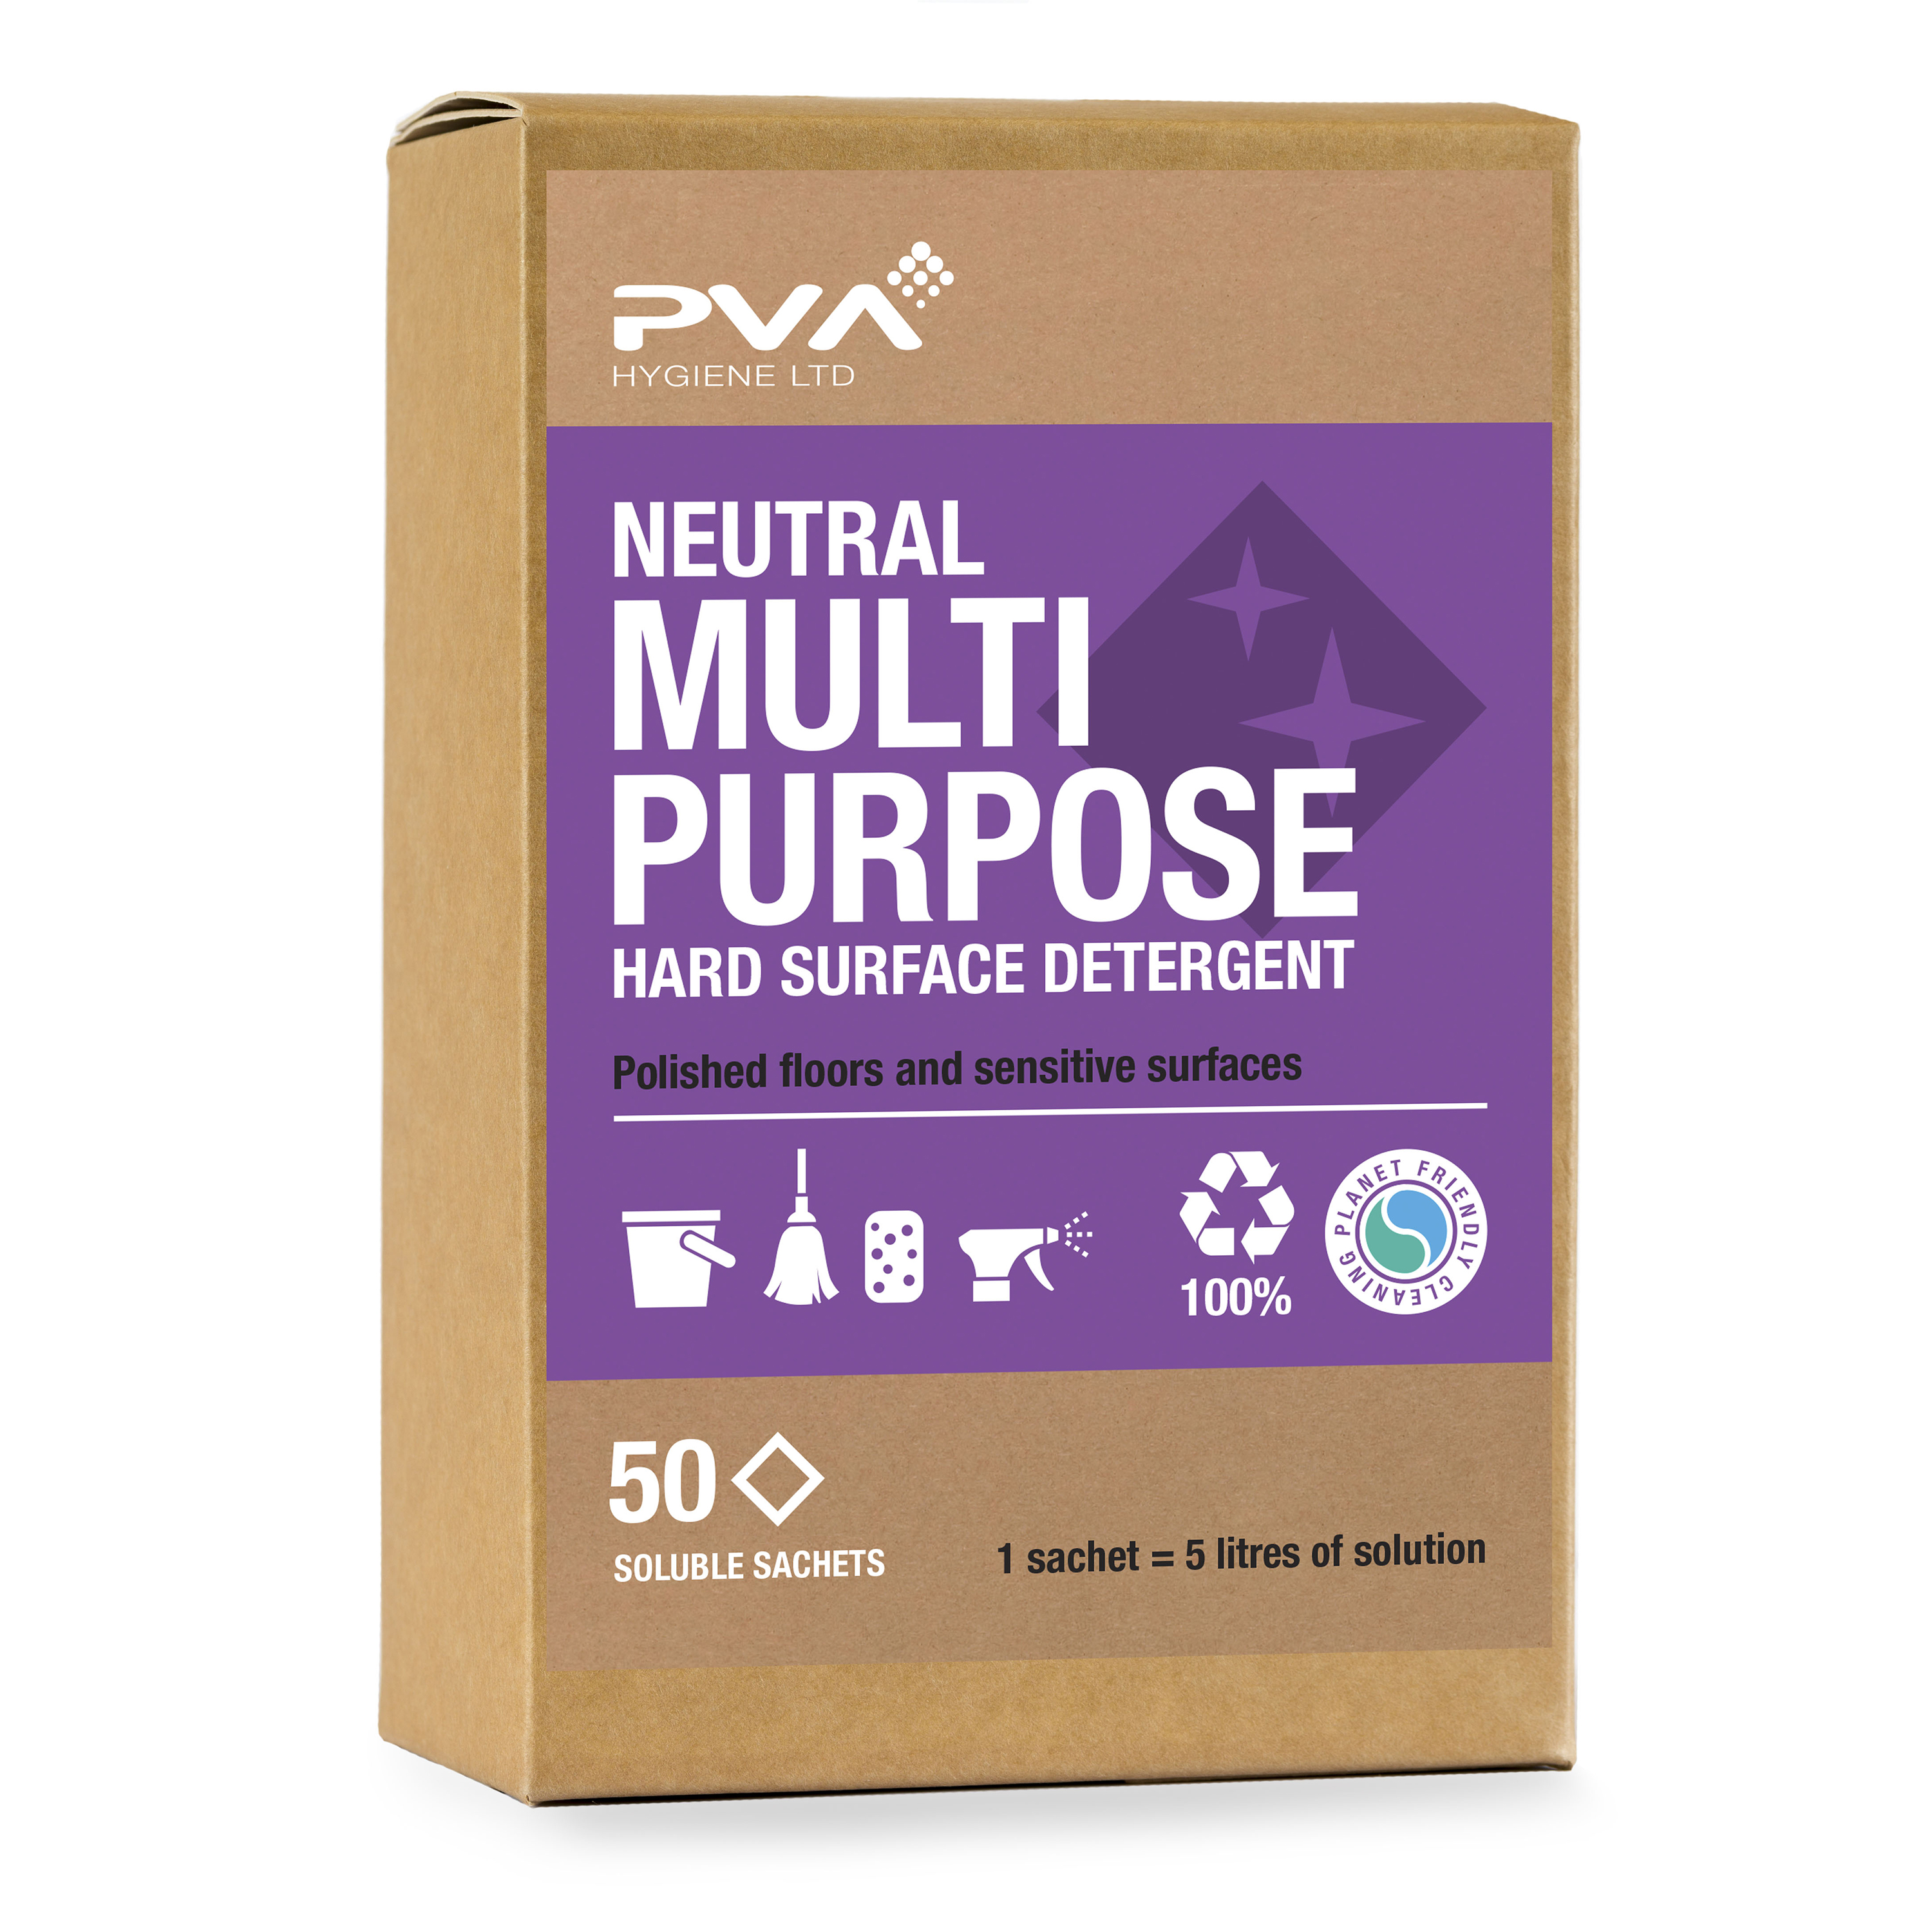 Cleaning Chemicals PVA Neutral Multi-purpose Hard Surface Detergent Sachets Ref PVA A2.55 50 Sachets